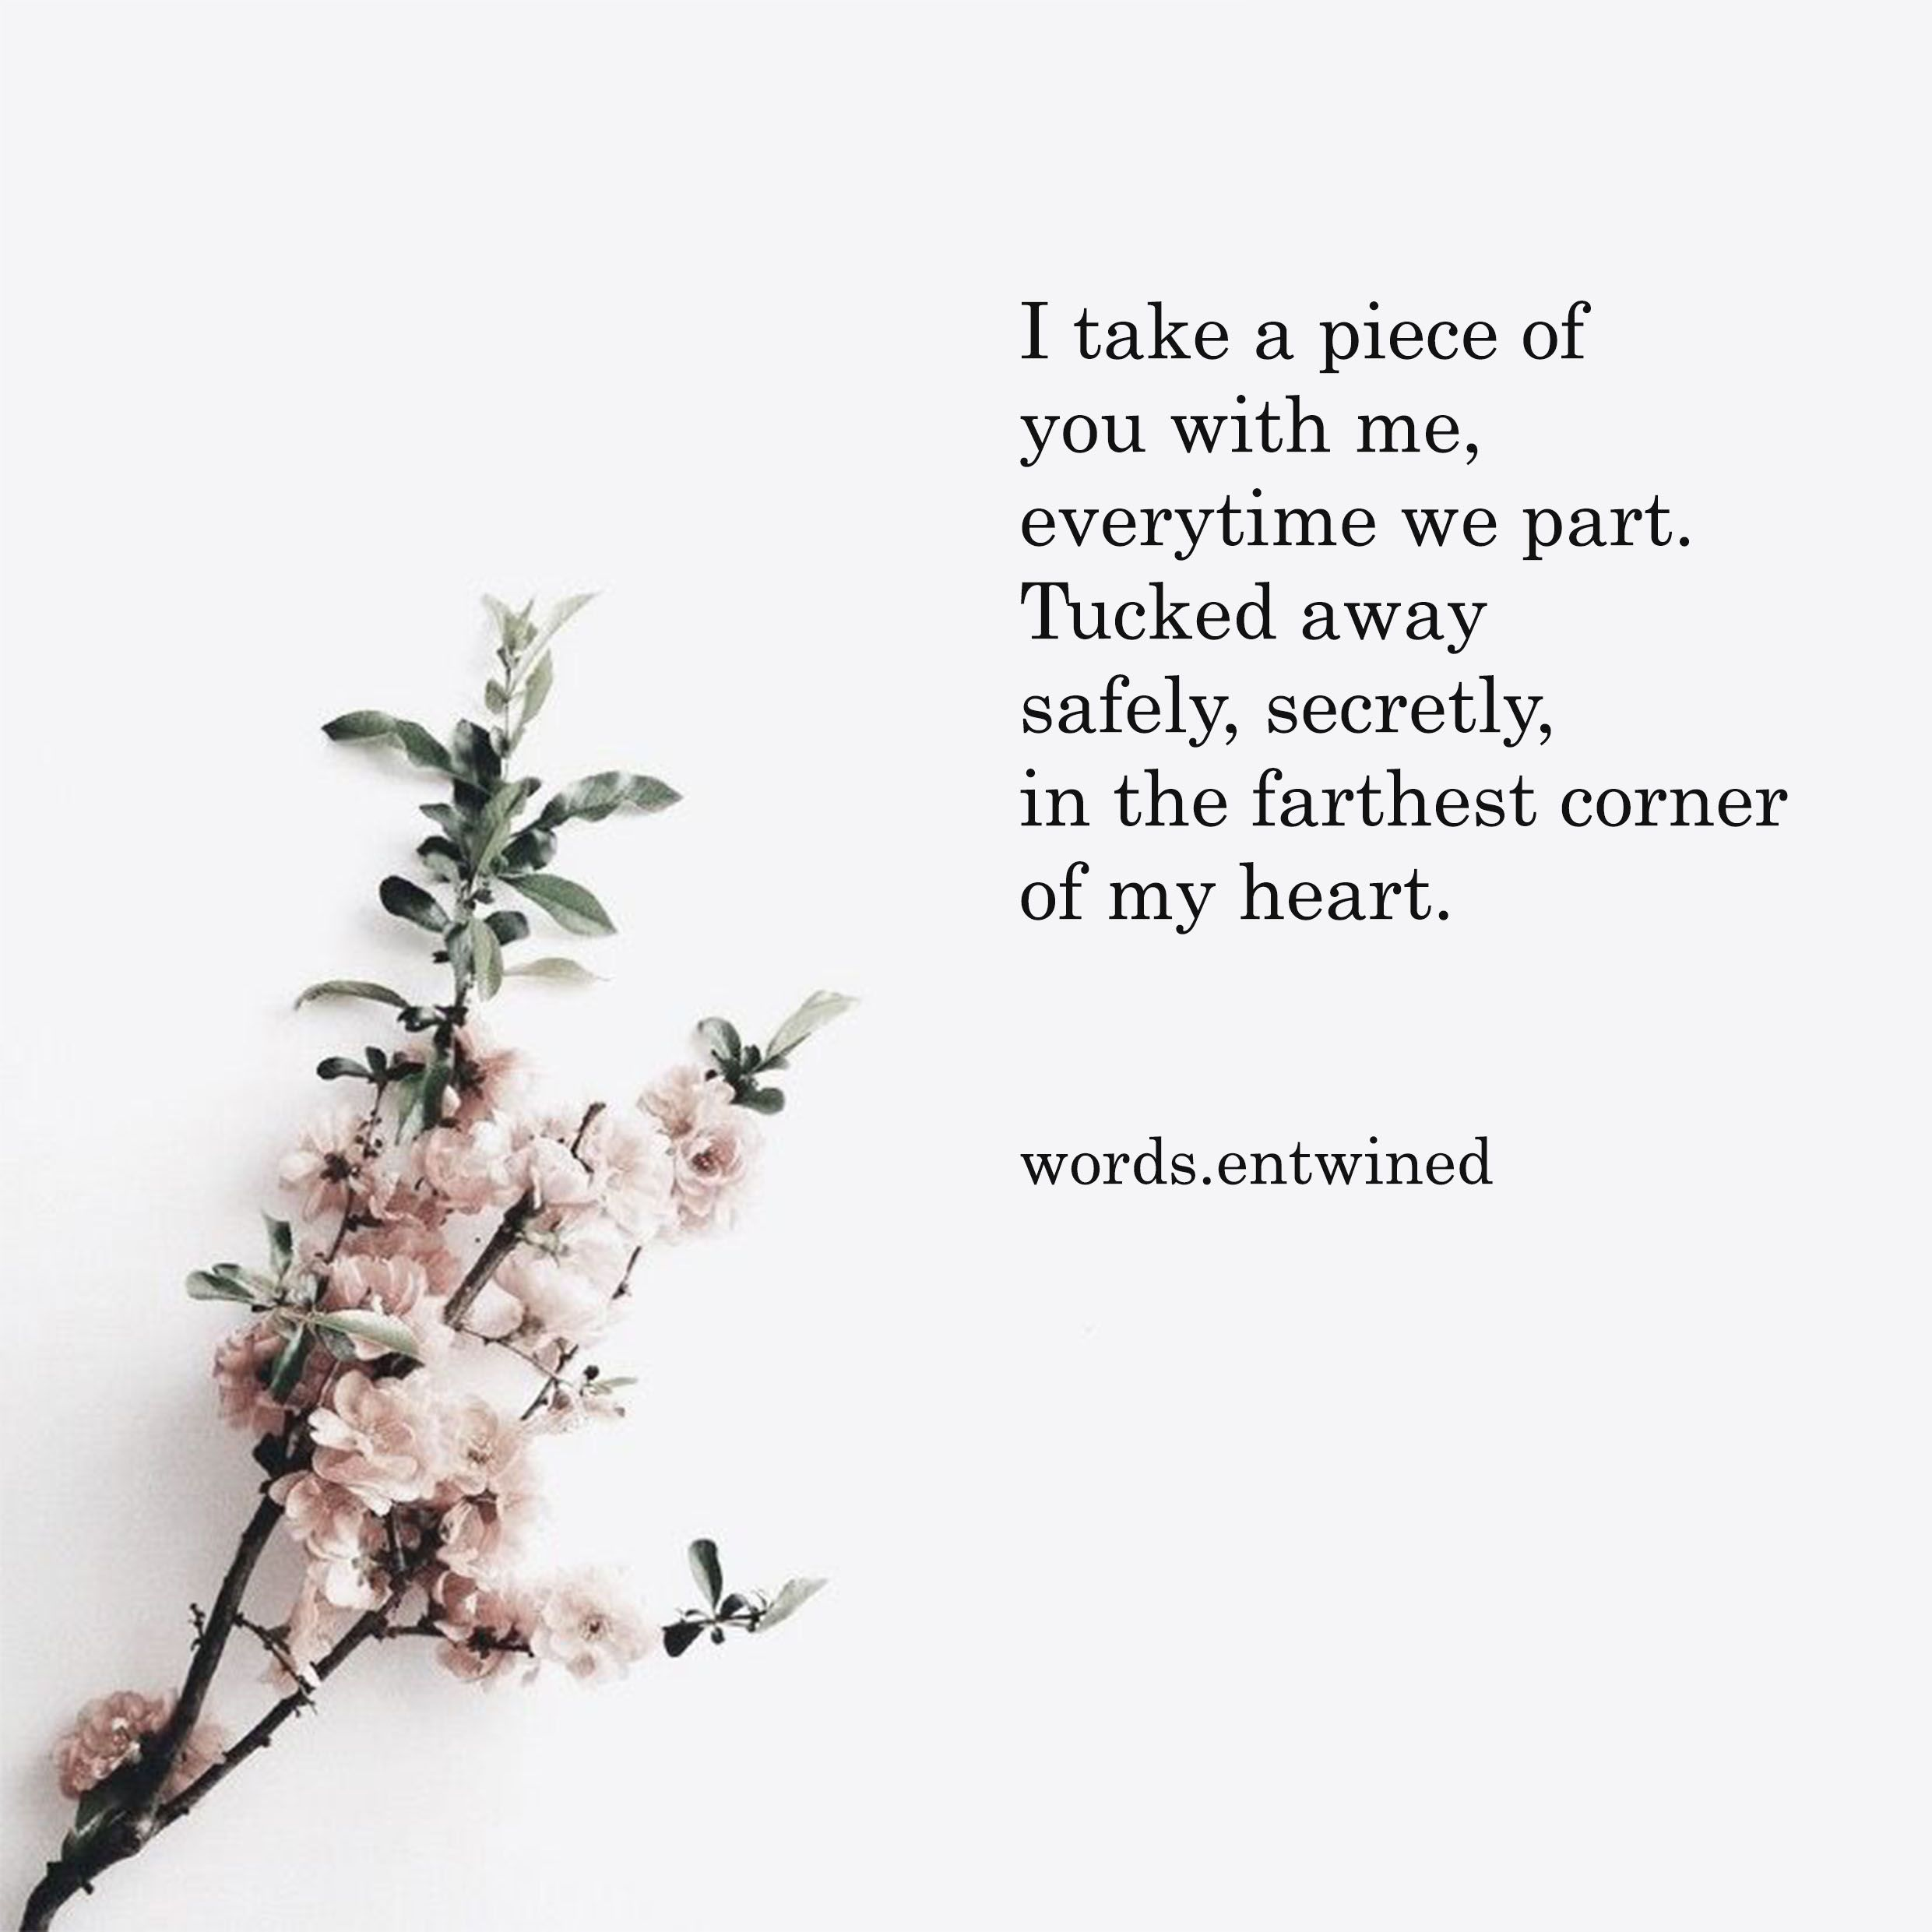 Follow @words.entwined On Instagram For Daily Poetry #poem #poetry #poems